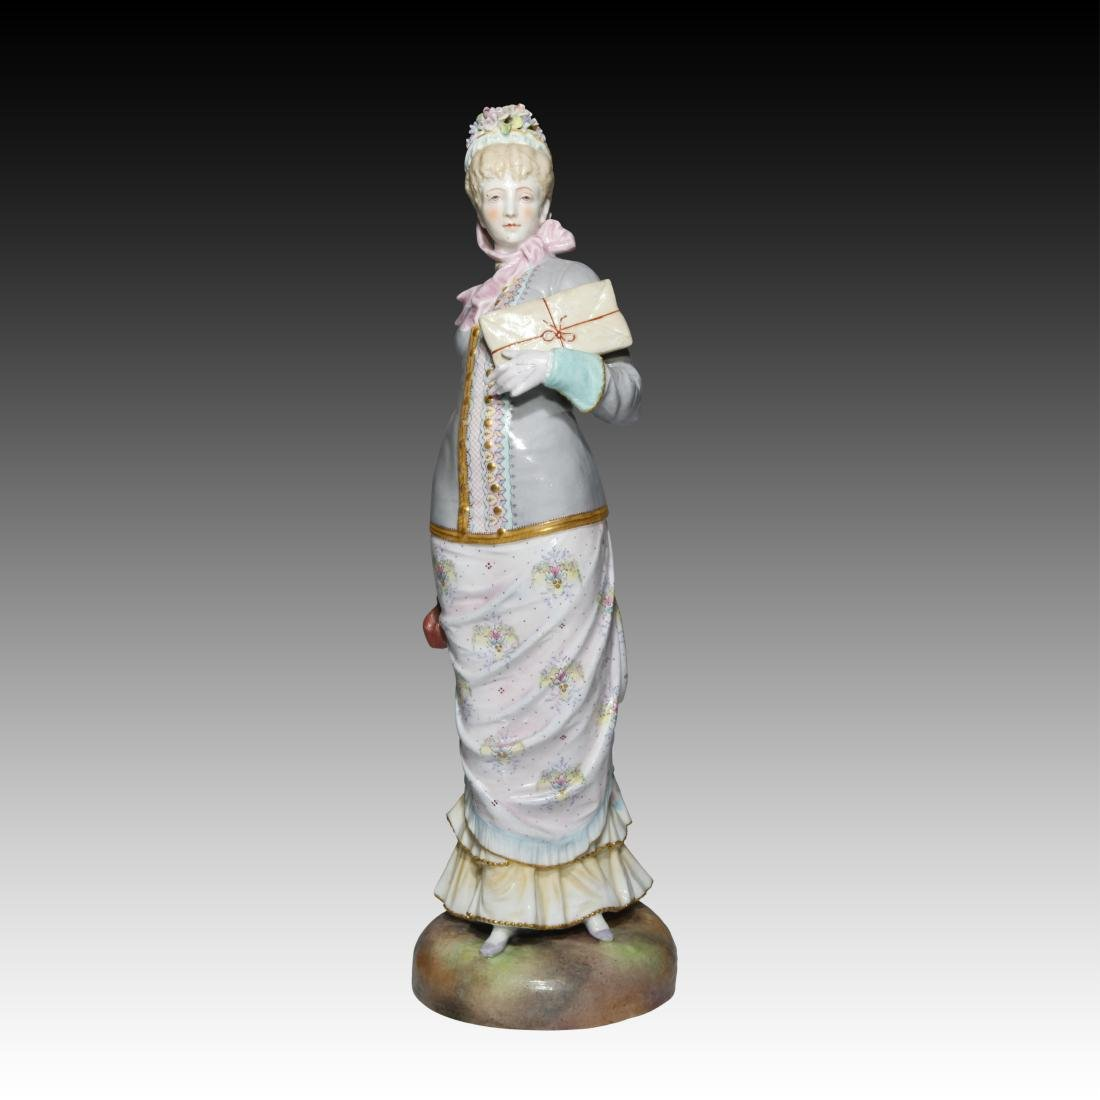 English Ceramic Figurine of a Classy Woman